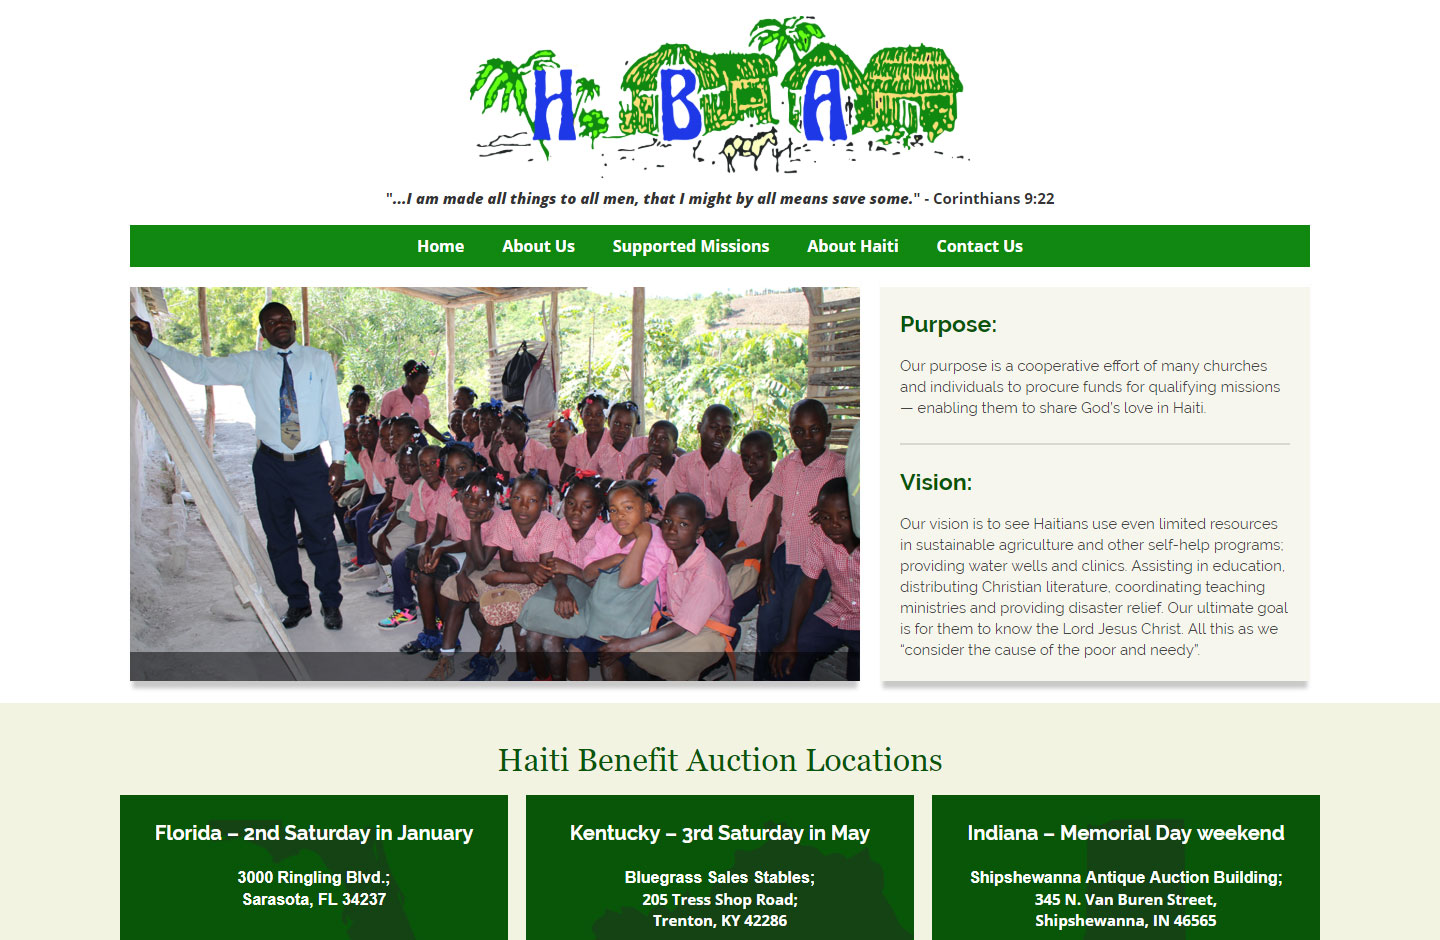 Haiti Benefit Auction